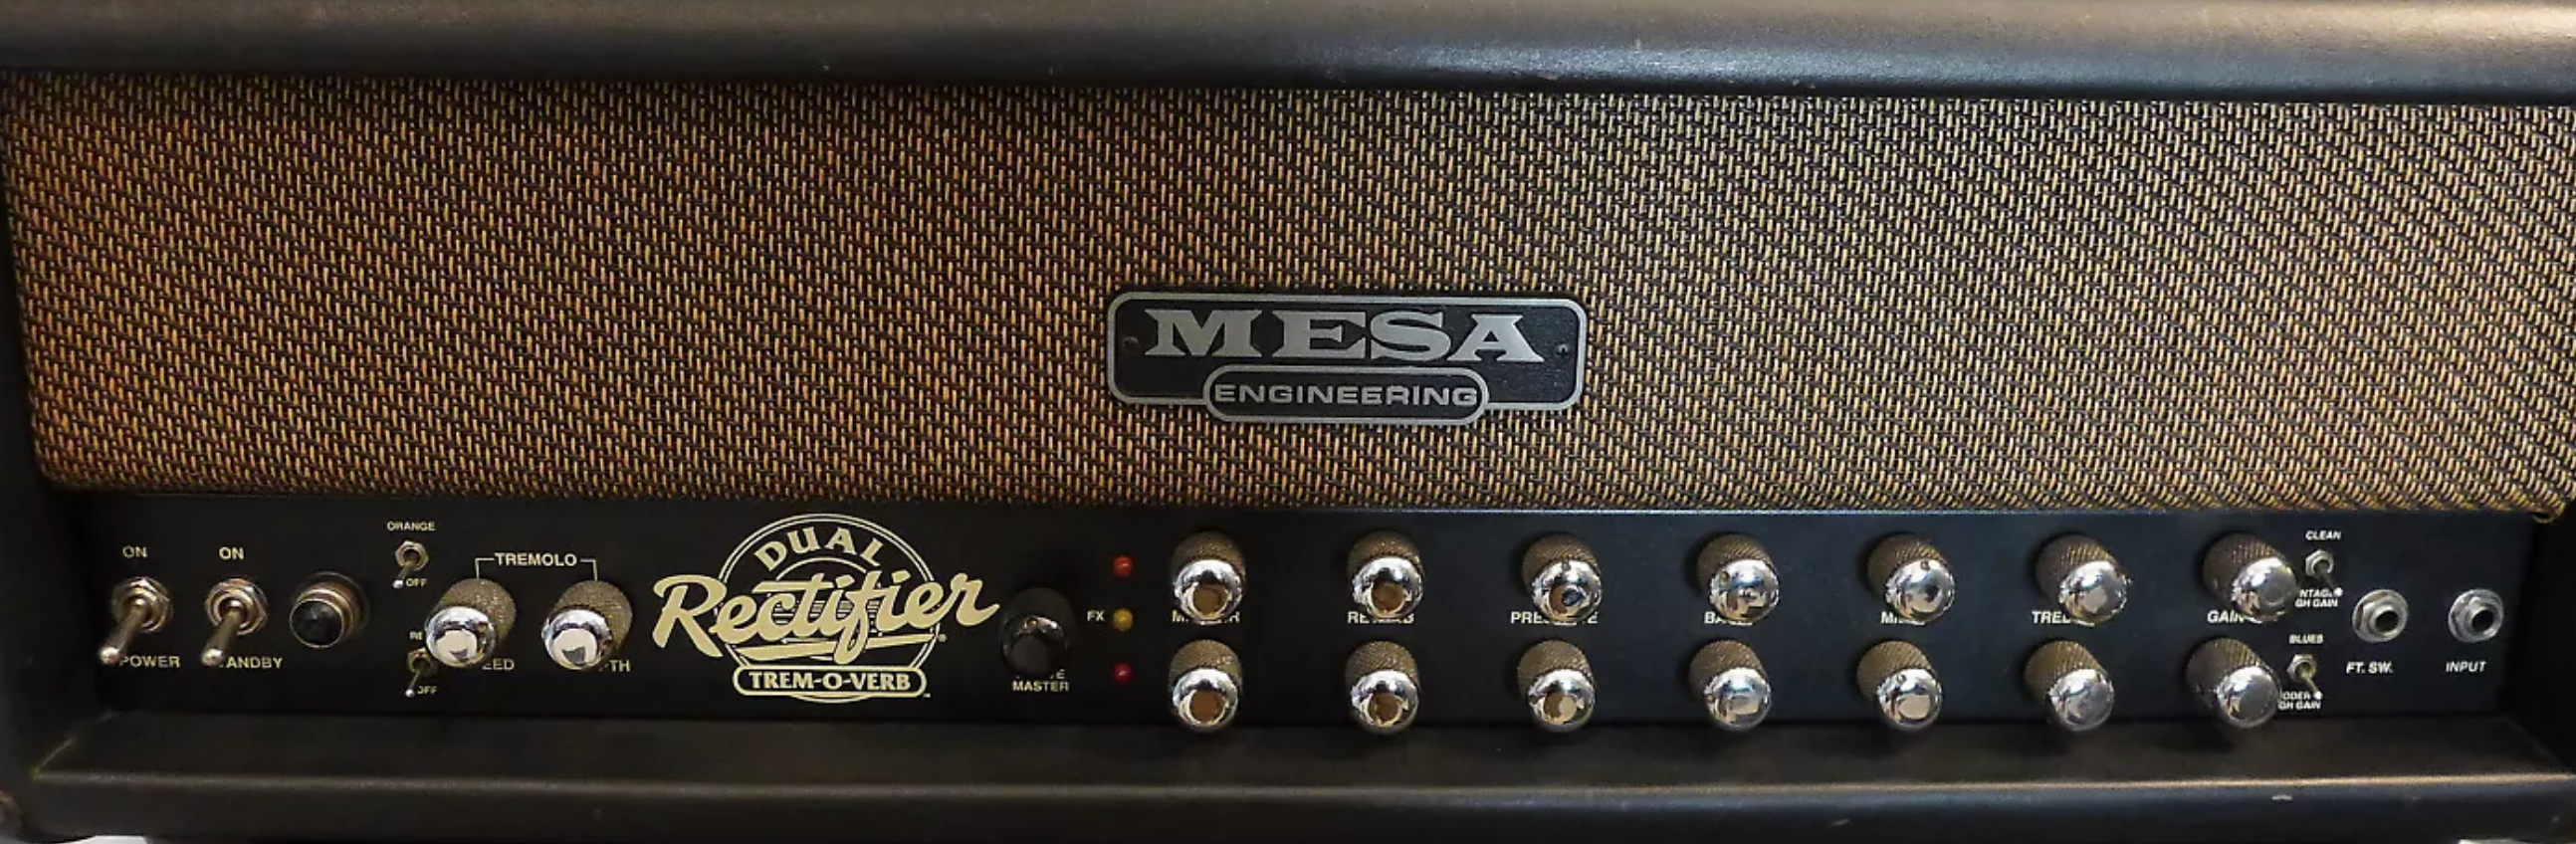 Best Valves For Mesa Boogie Trem O Verb Amplifier